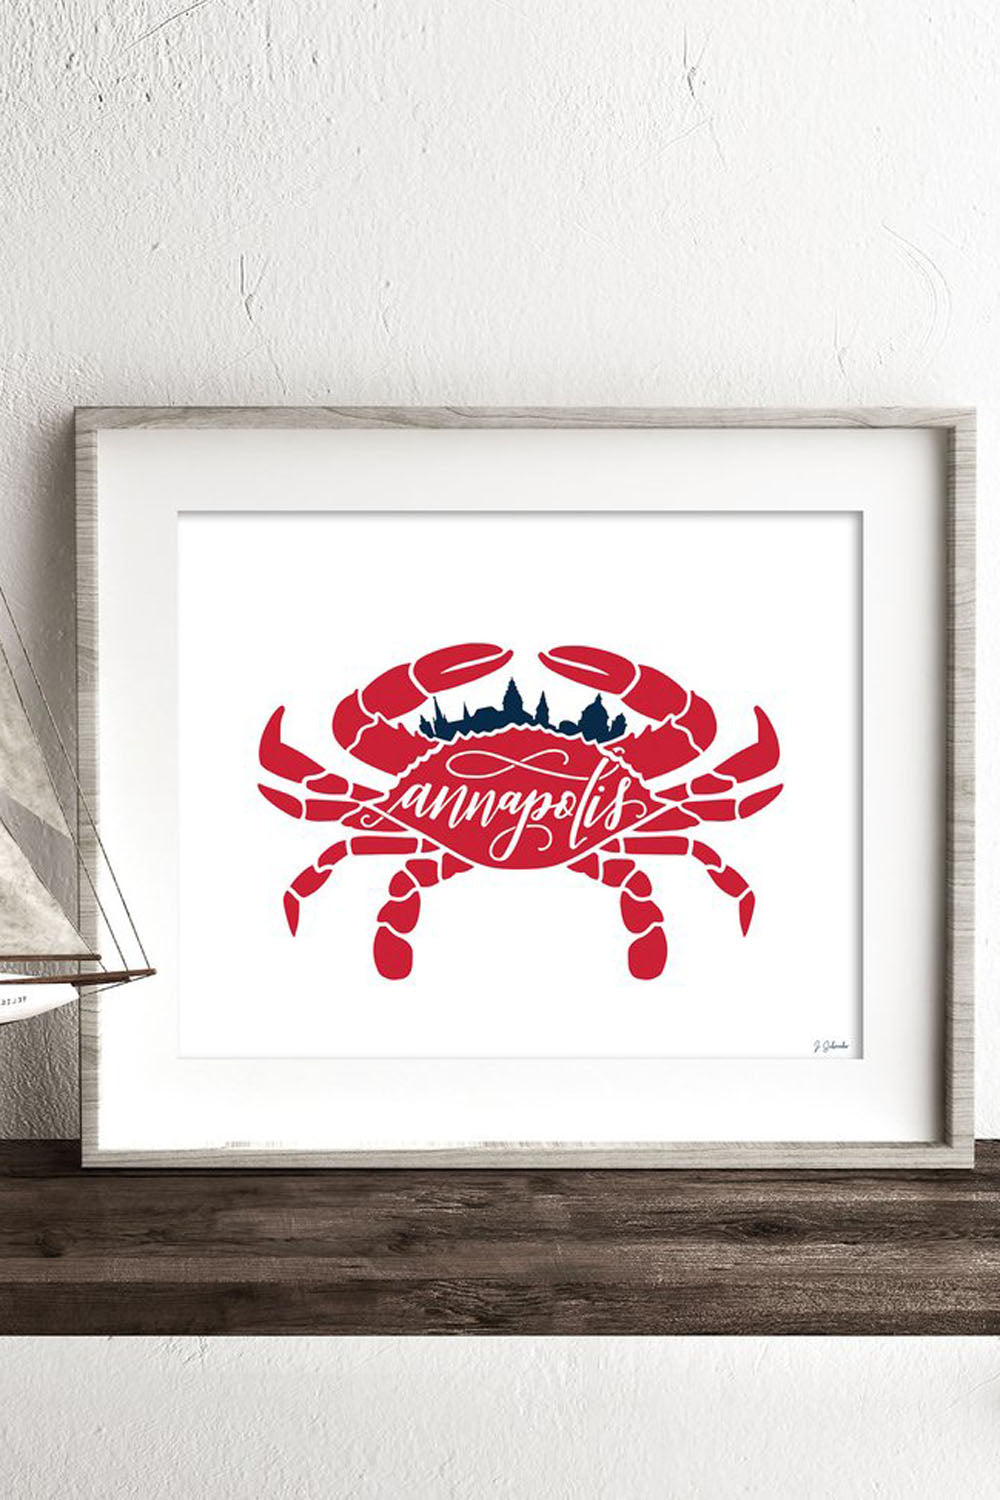 Locally Designed Print - Crab Annapolis Skyline